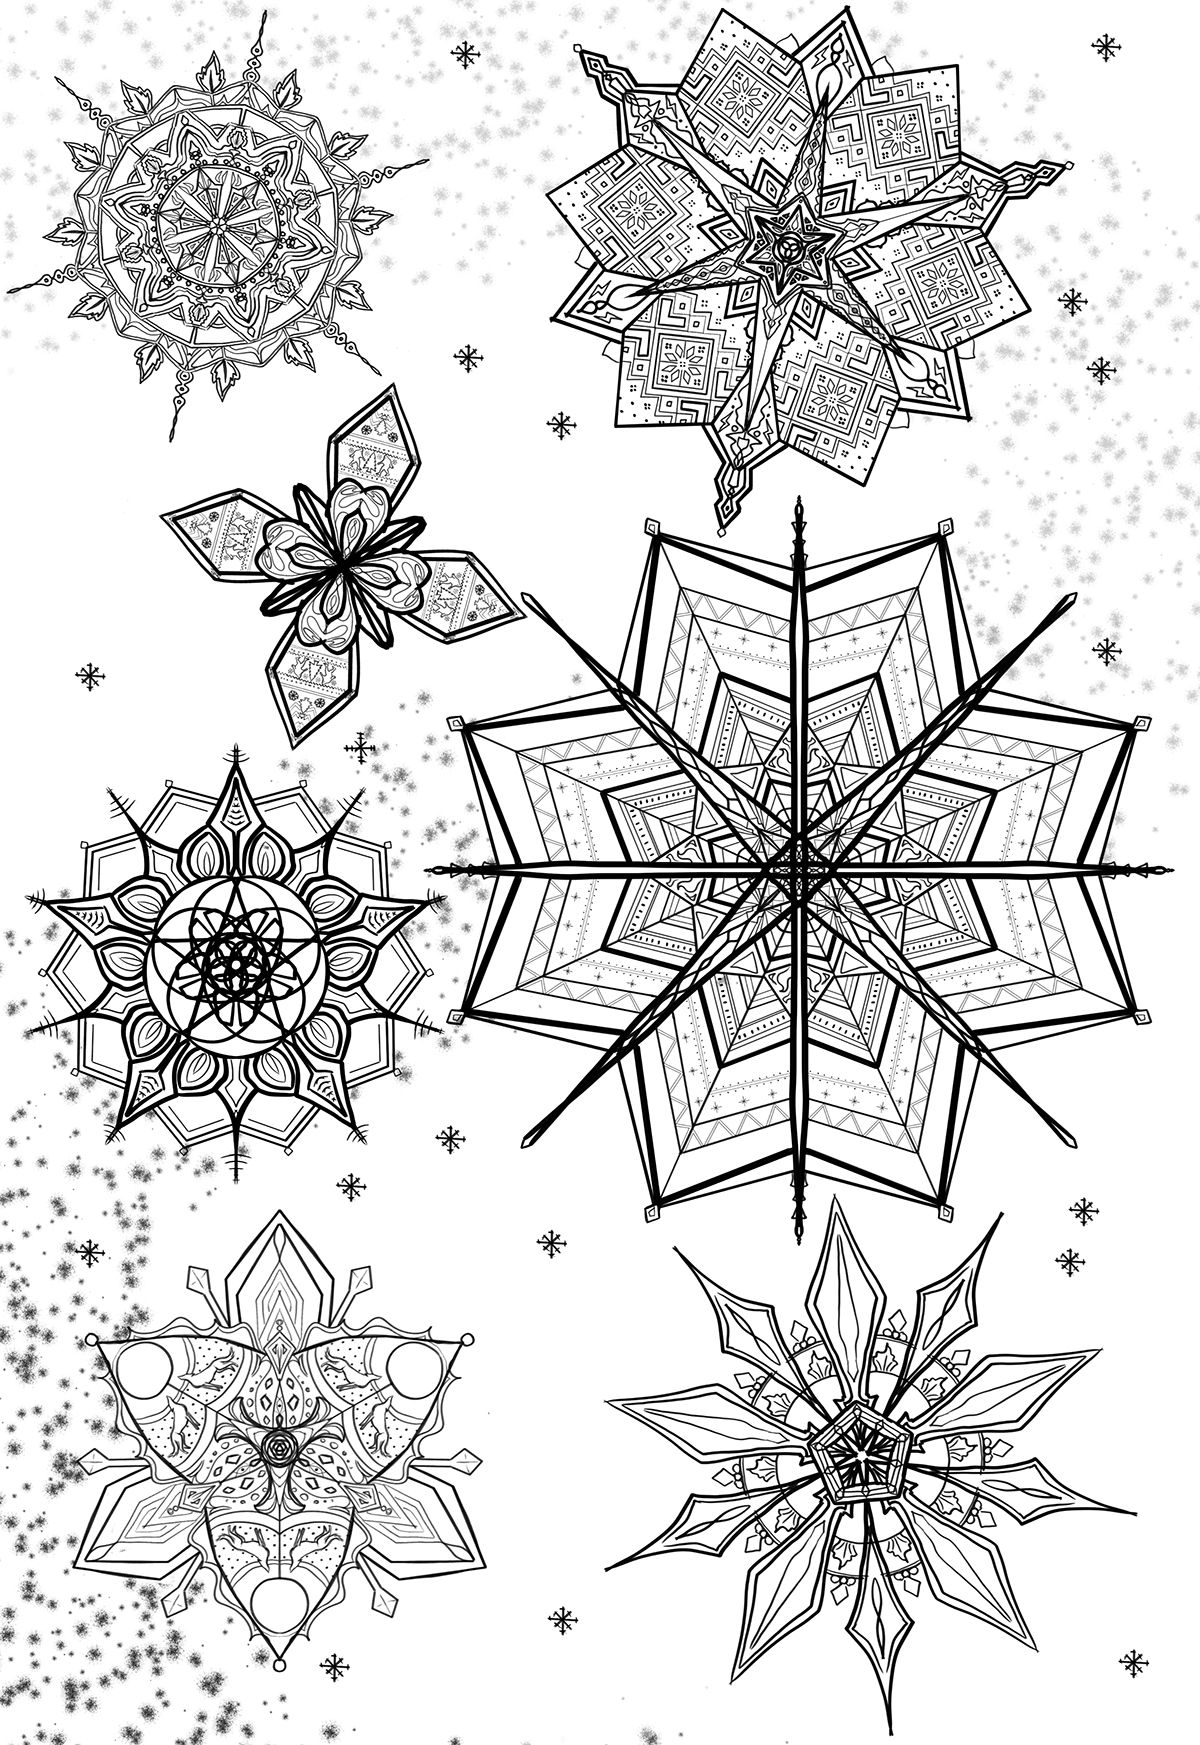 Snowflake Colouring Page on Behance Coloring pages